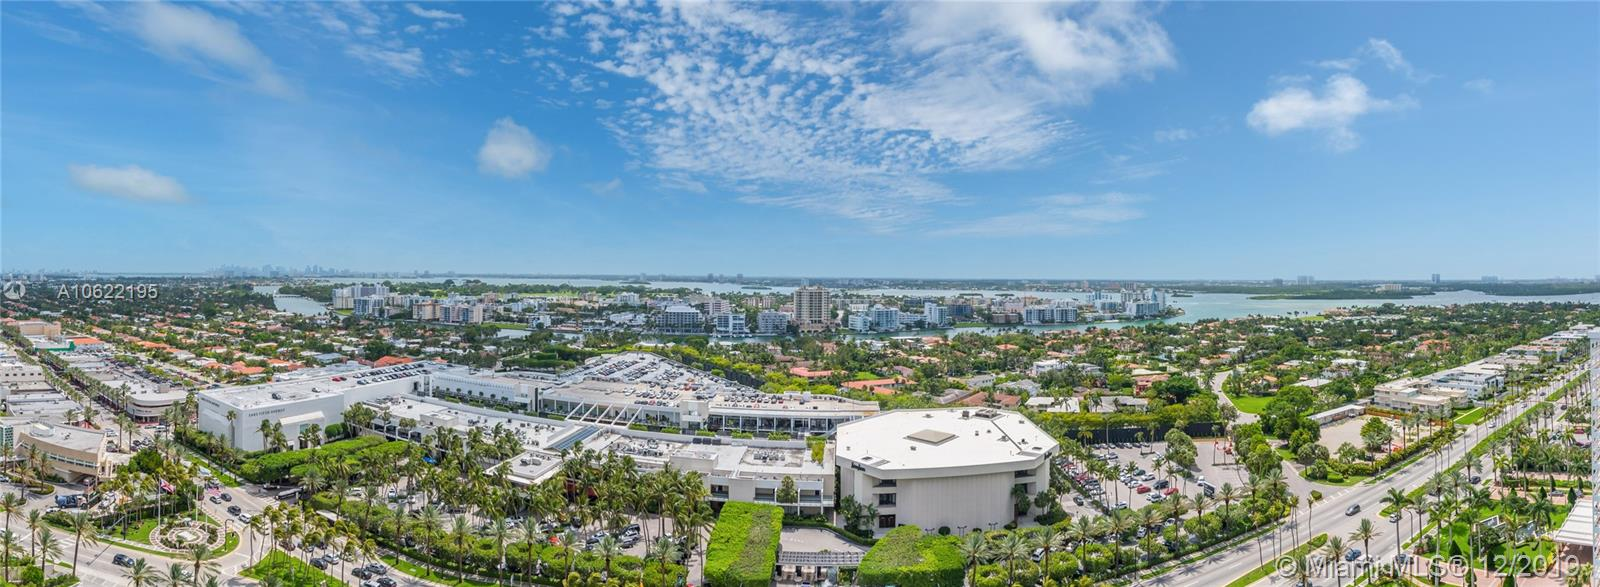 9705  Collins Ave #2003N For Sale A10622195, FL